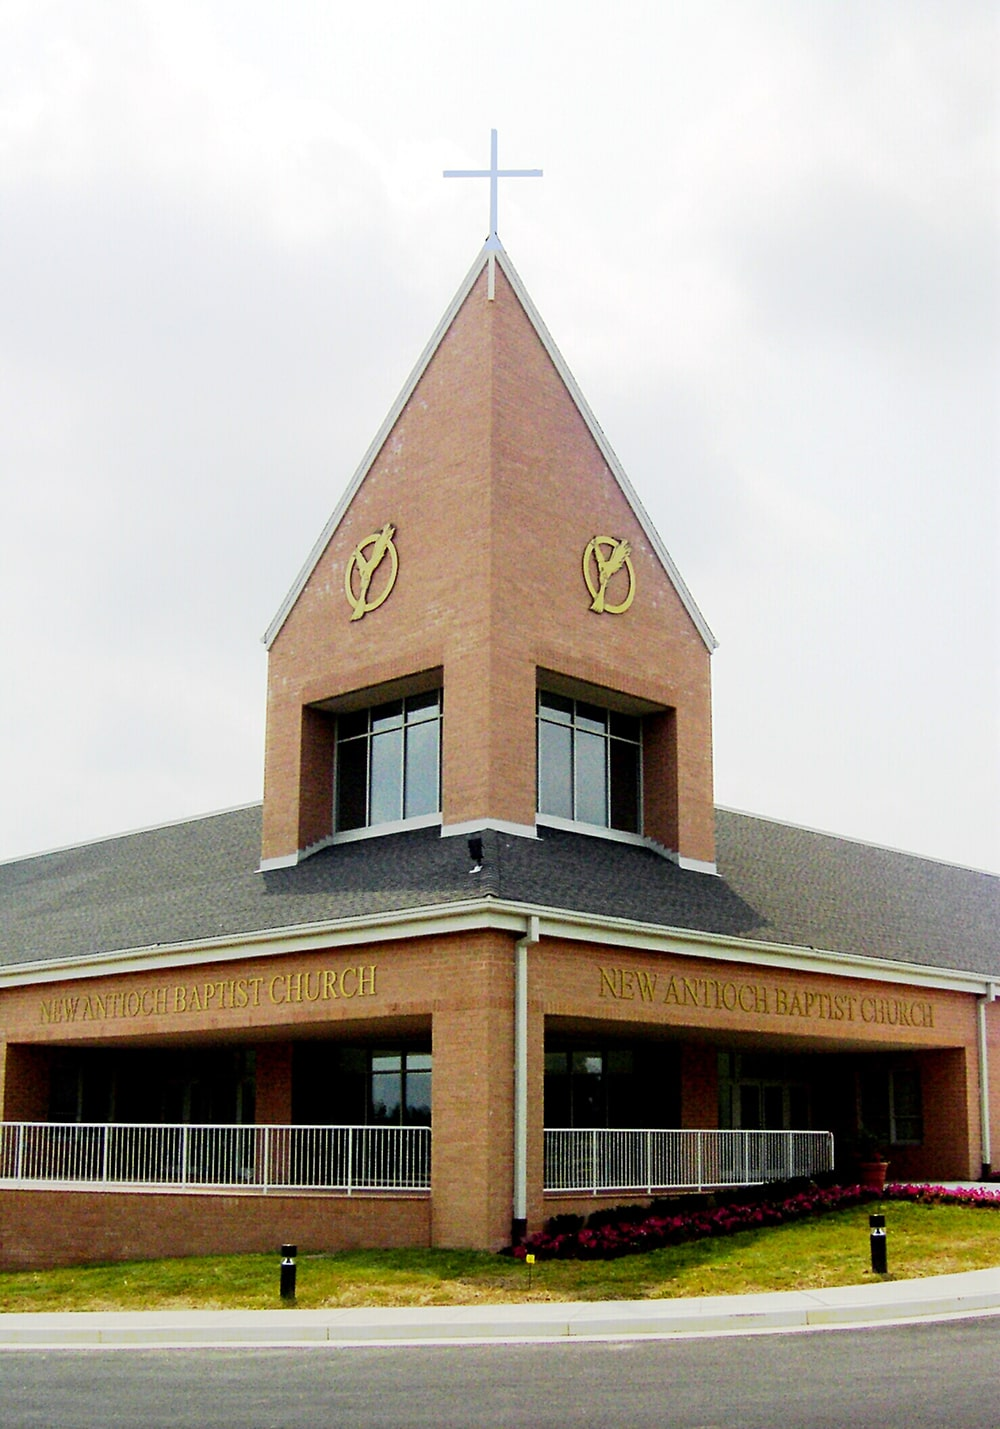 New Antioch Baptist Church